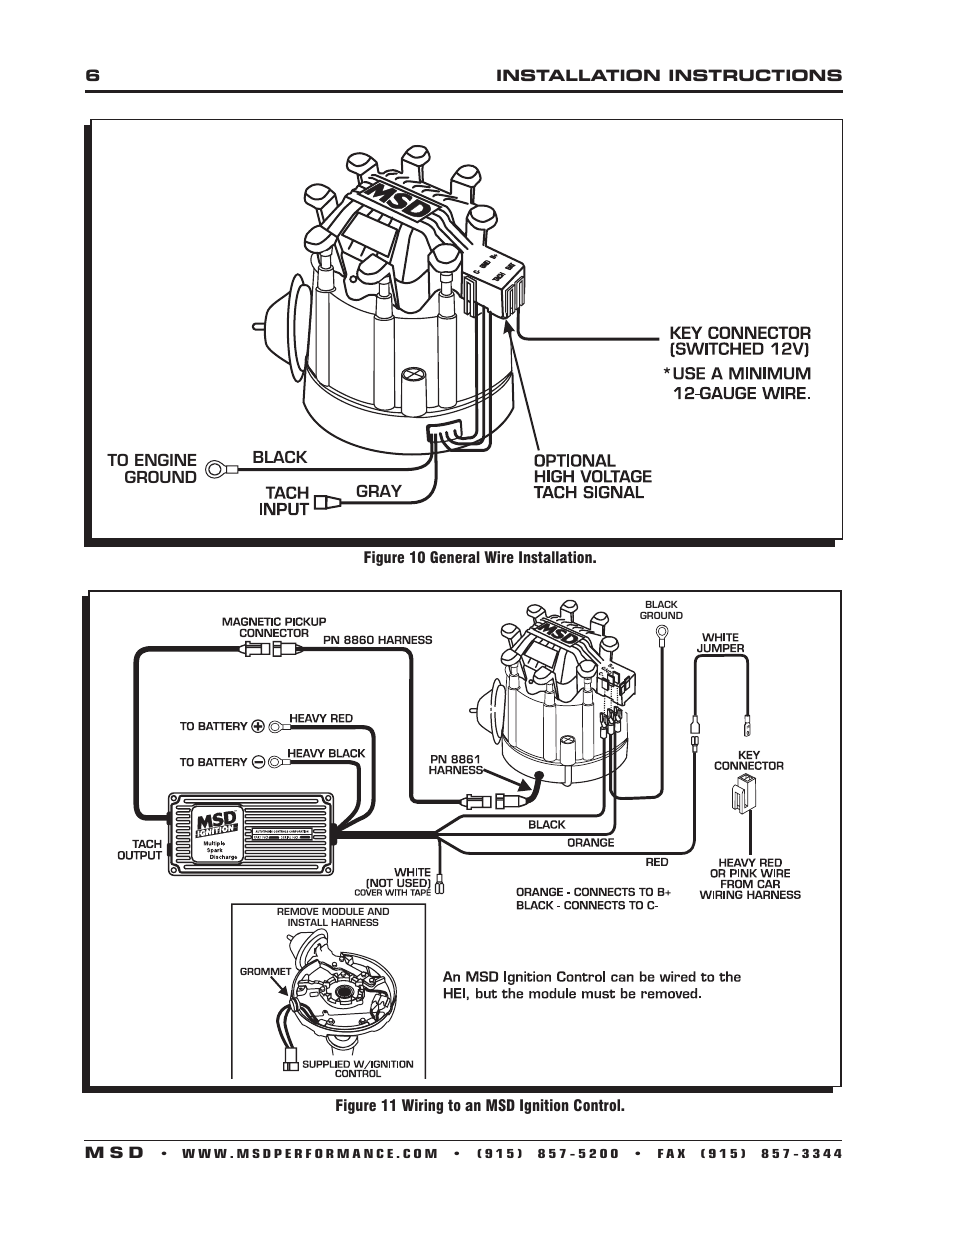 msd-8365-gm-hei-billet-distributor-installation-page6 Gm Hei Distributor Wiring Harness on tach signal, timing adjustment, wiring ground, internal parts, mechanical weights, streetfire chevrolet v8, wire diagram, wire harness, small cap, module test,